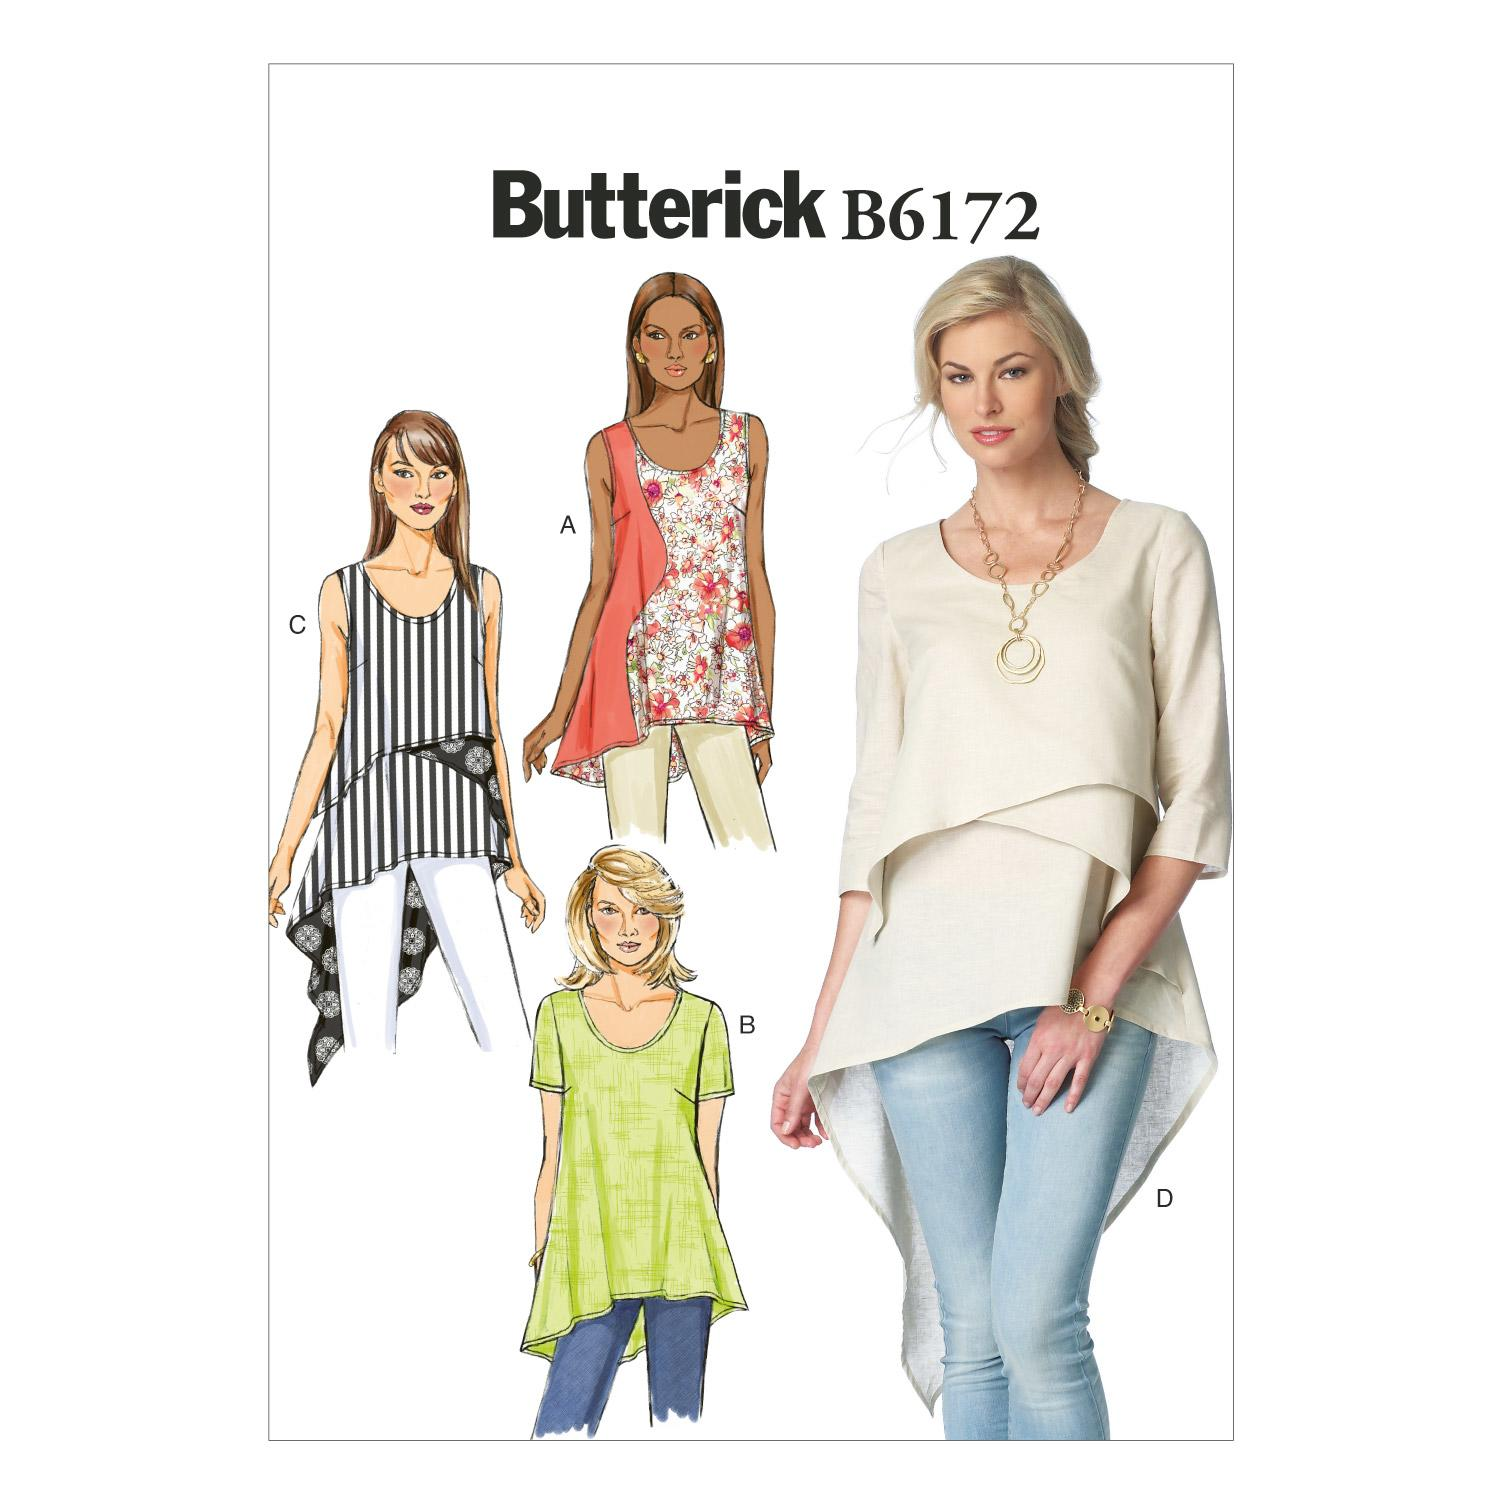 Butterick B6172 Misses' Top and Tunic